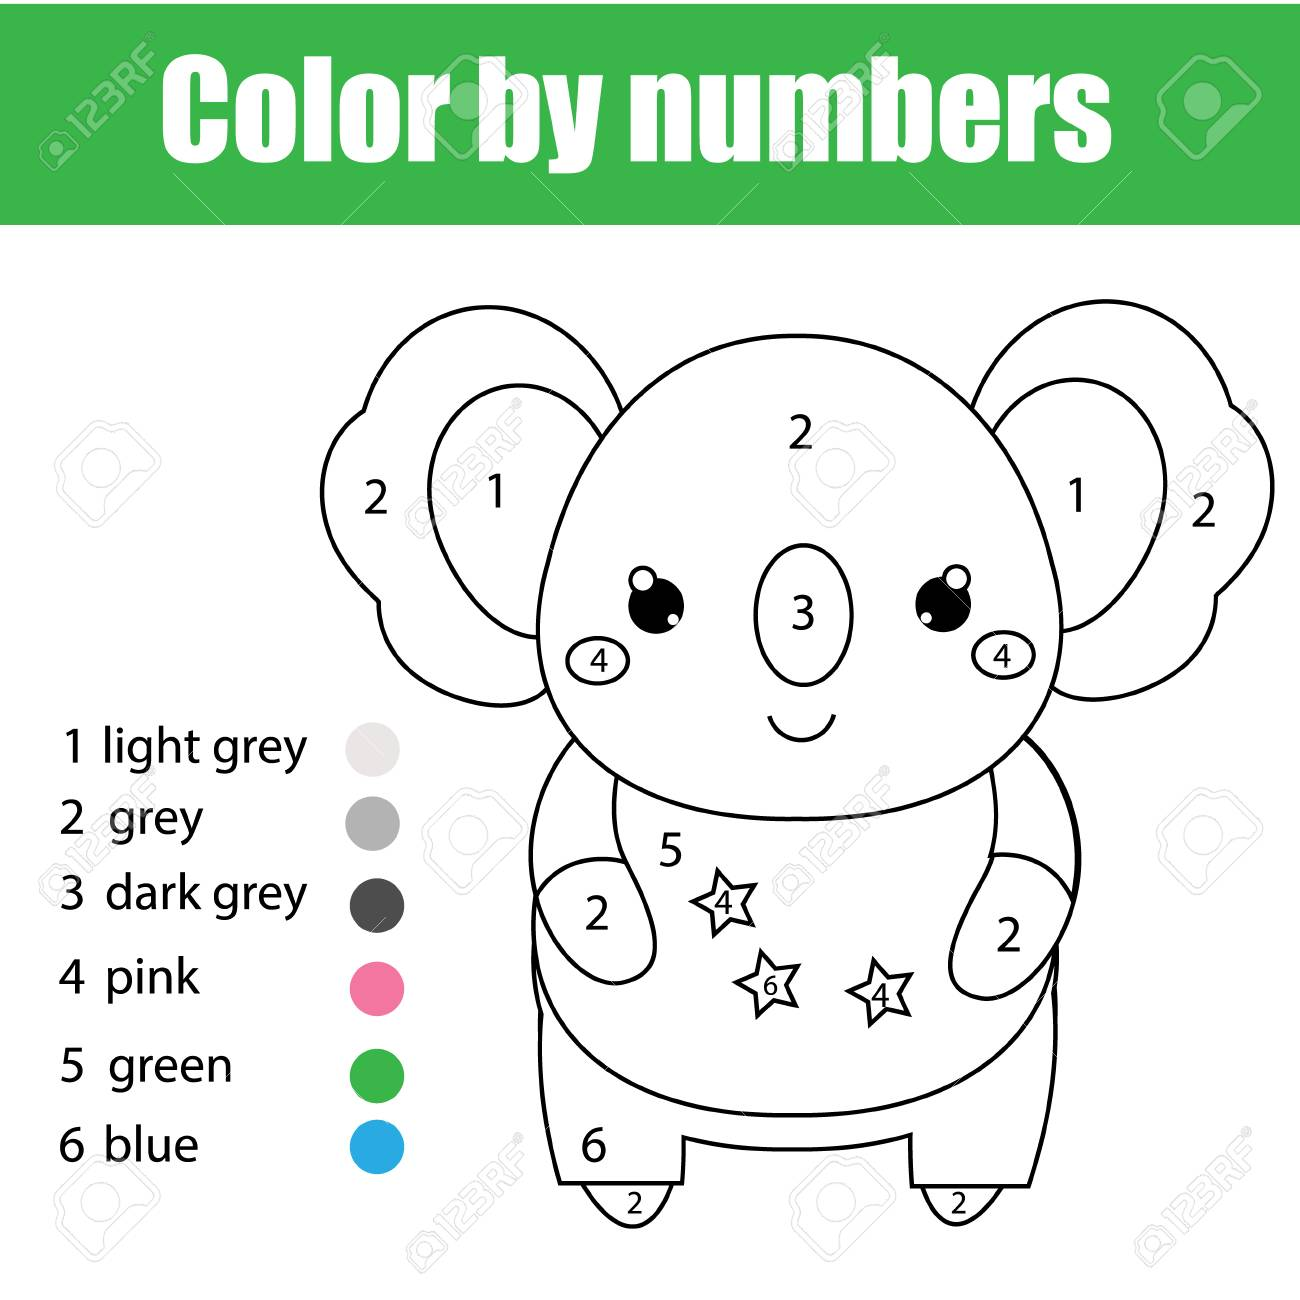 Children Educational Game Coloring Page With Cute Koala Color By Numbers Printable Activity